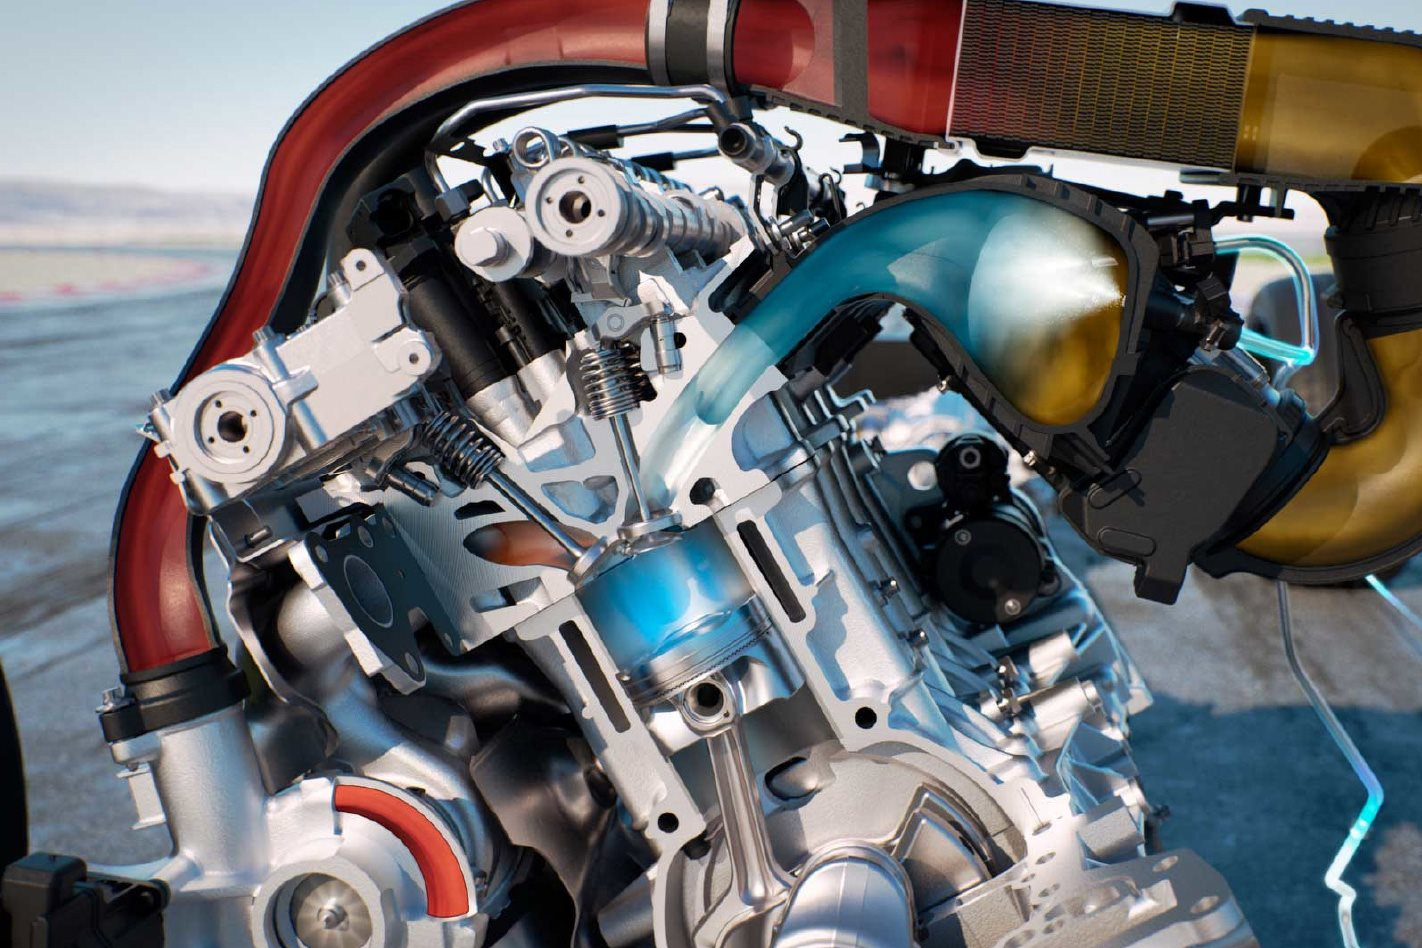 Explained: BMW water injection system